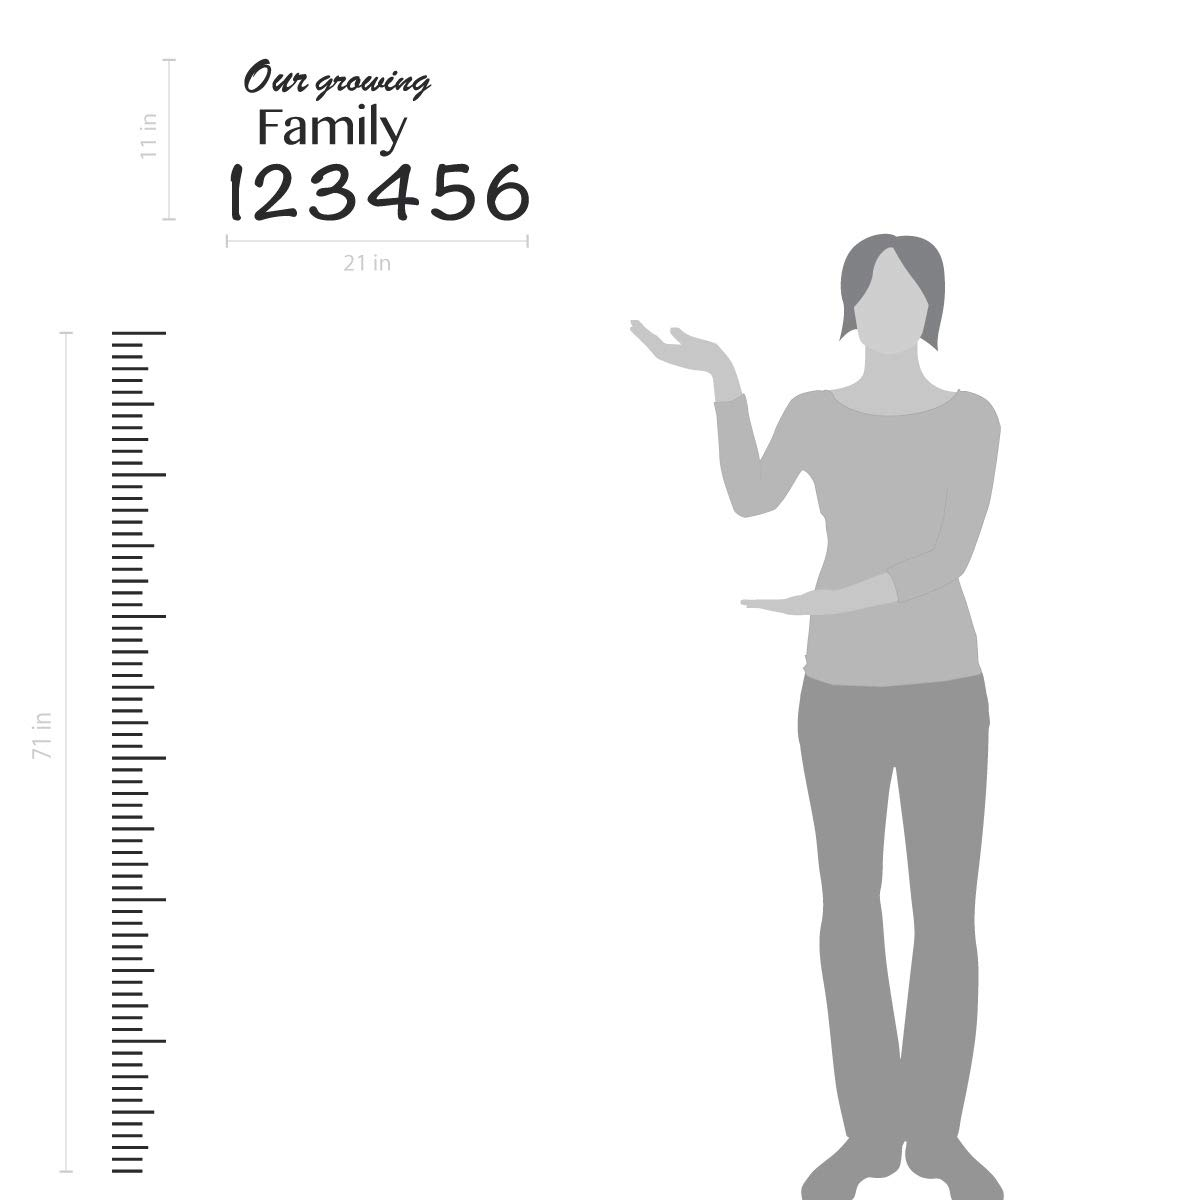 Giant Vinyl Growth Chart Kit Kids DIY Height Wall Ruler Large Measuring Tape Sticker Number Decal Sticker Azure Blue, 73x23 inches